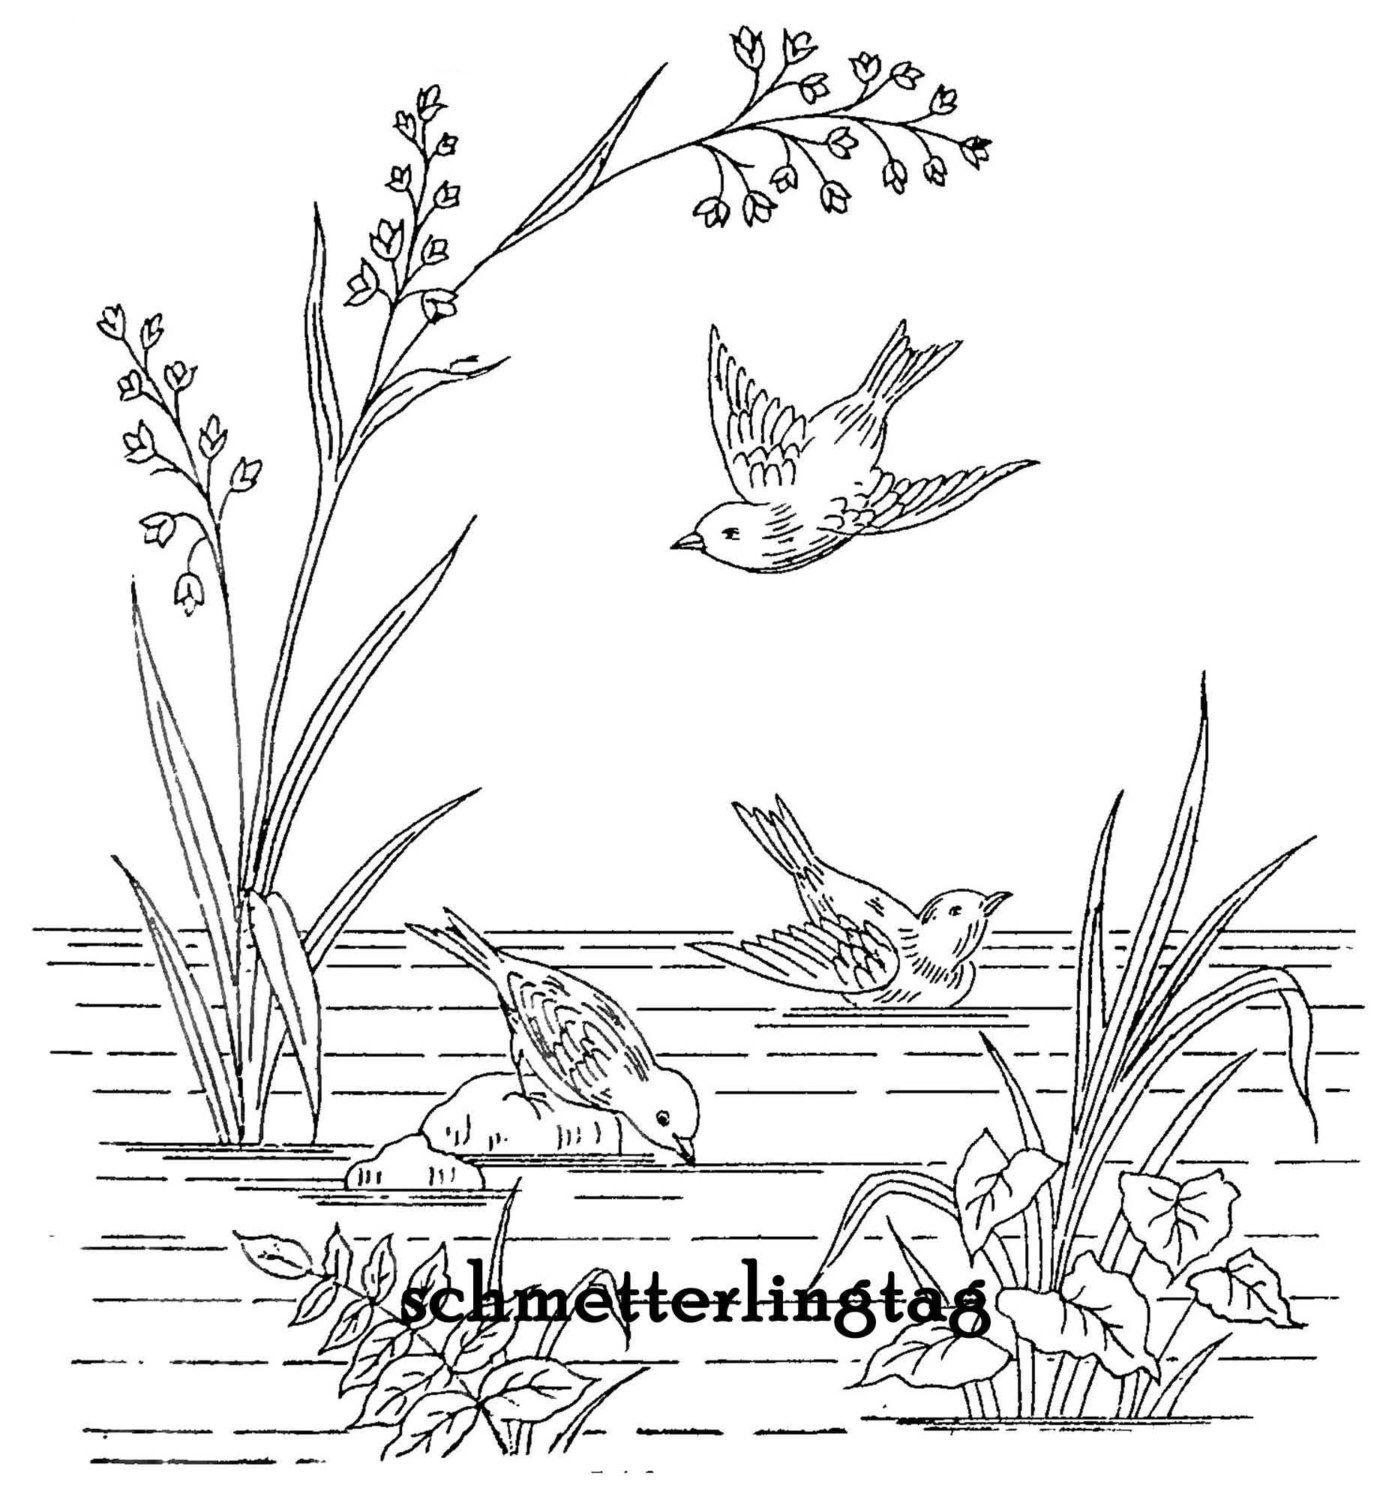 pin by kitty and me designs on embroidery patterns pinterest Magazine Names genuine victorian patterns pond with water plants cattails heron and butterfly